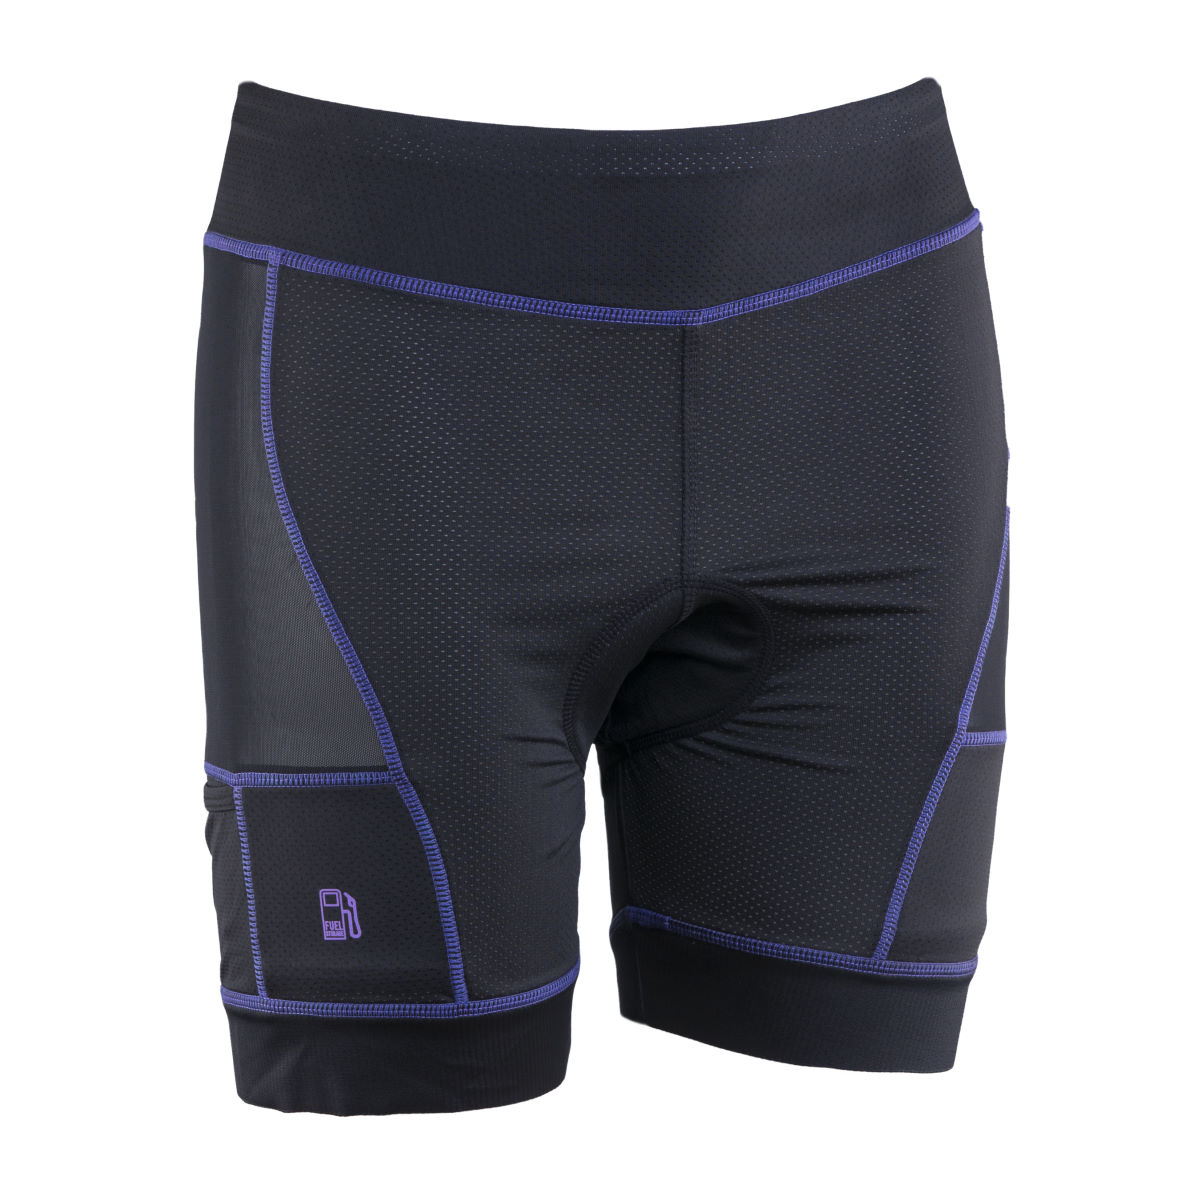 Sous-short Femme Race Face Stash Liner (noir) - Medium Stealth